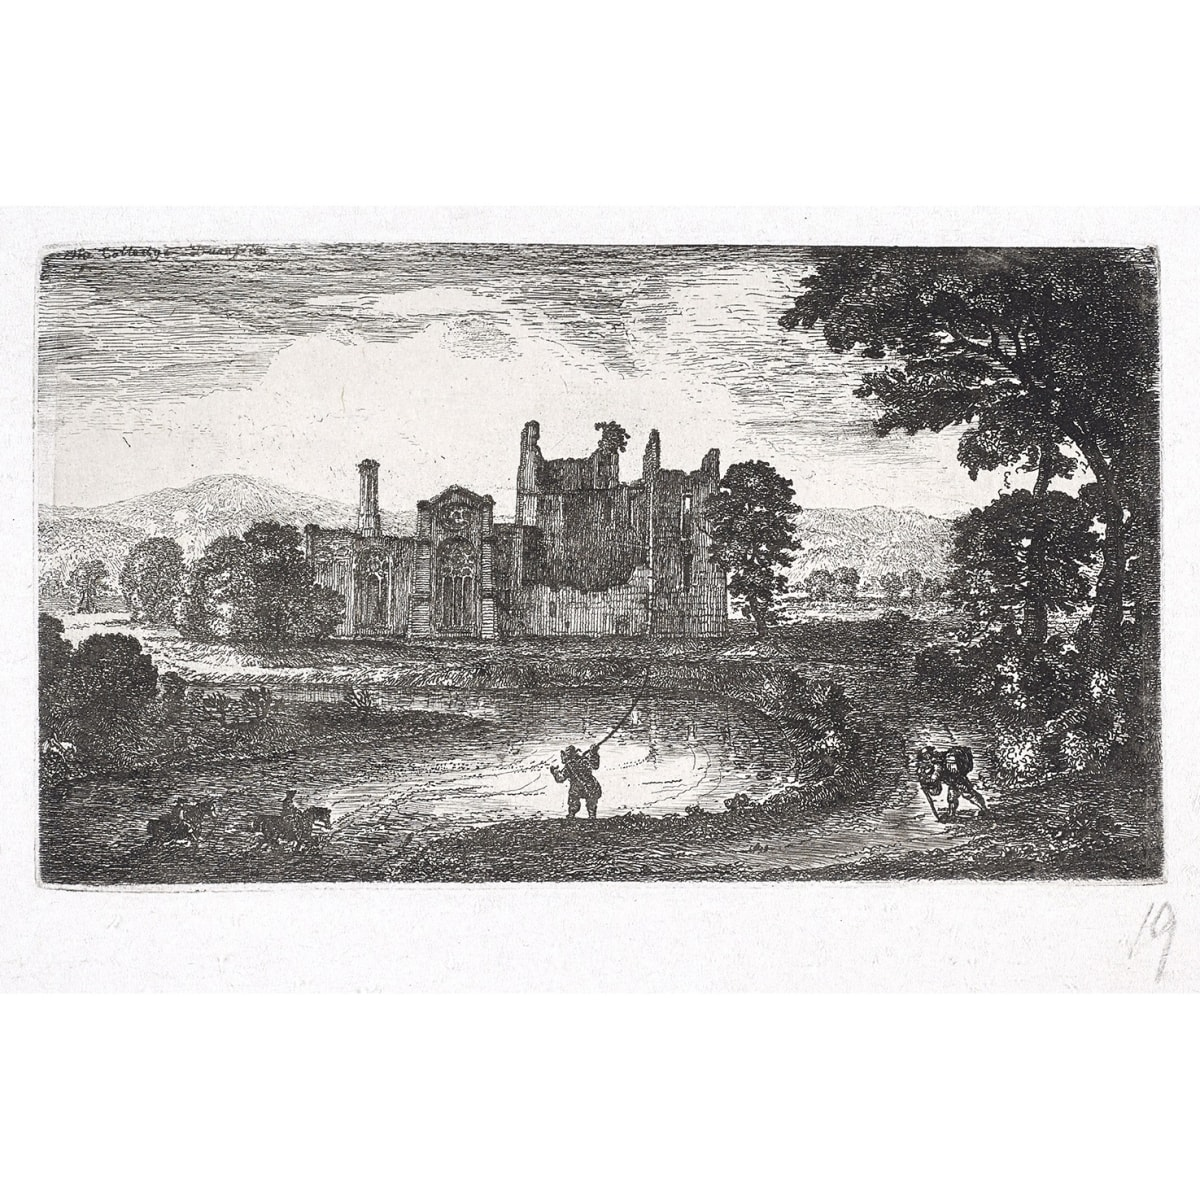 John Clerk of Eldin Lincluden Abbey titled 'The Colledge of Dumfries' in plate etching and drypoint 3 1/2 x 6 inches second state